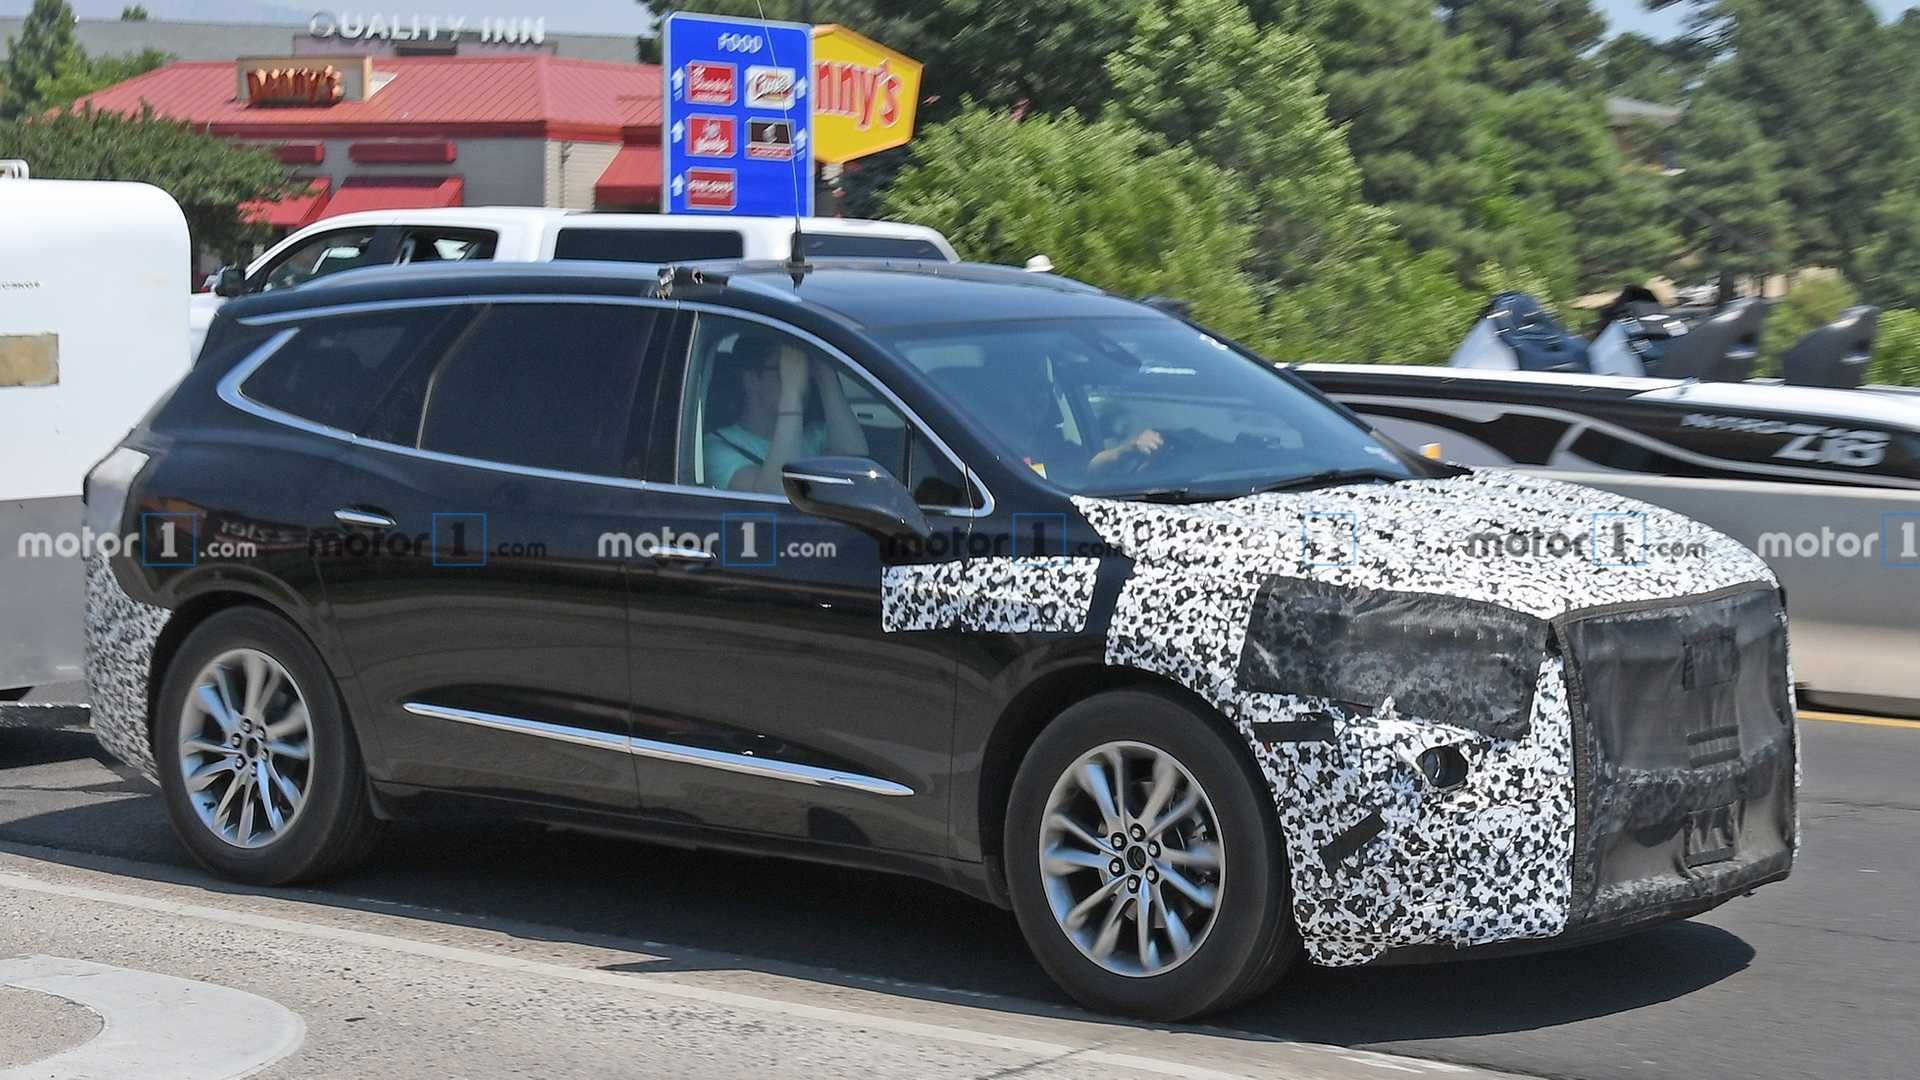 The Very First Information About The New 2021 Buick Encore Has Emerged And According To Them This Subcompact Crossover Suv W Buick Enclave Buick Buick Encore